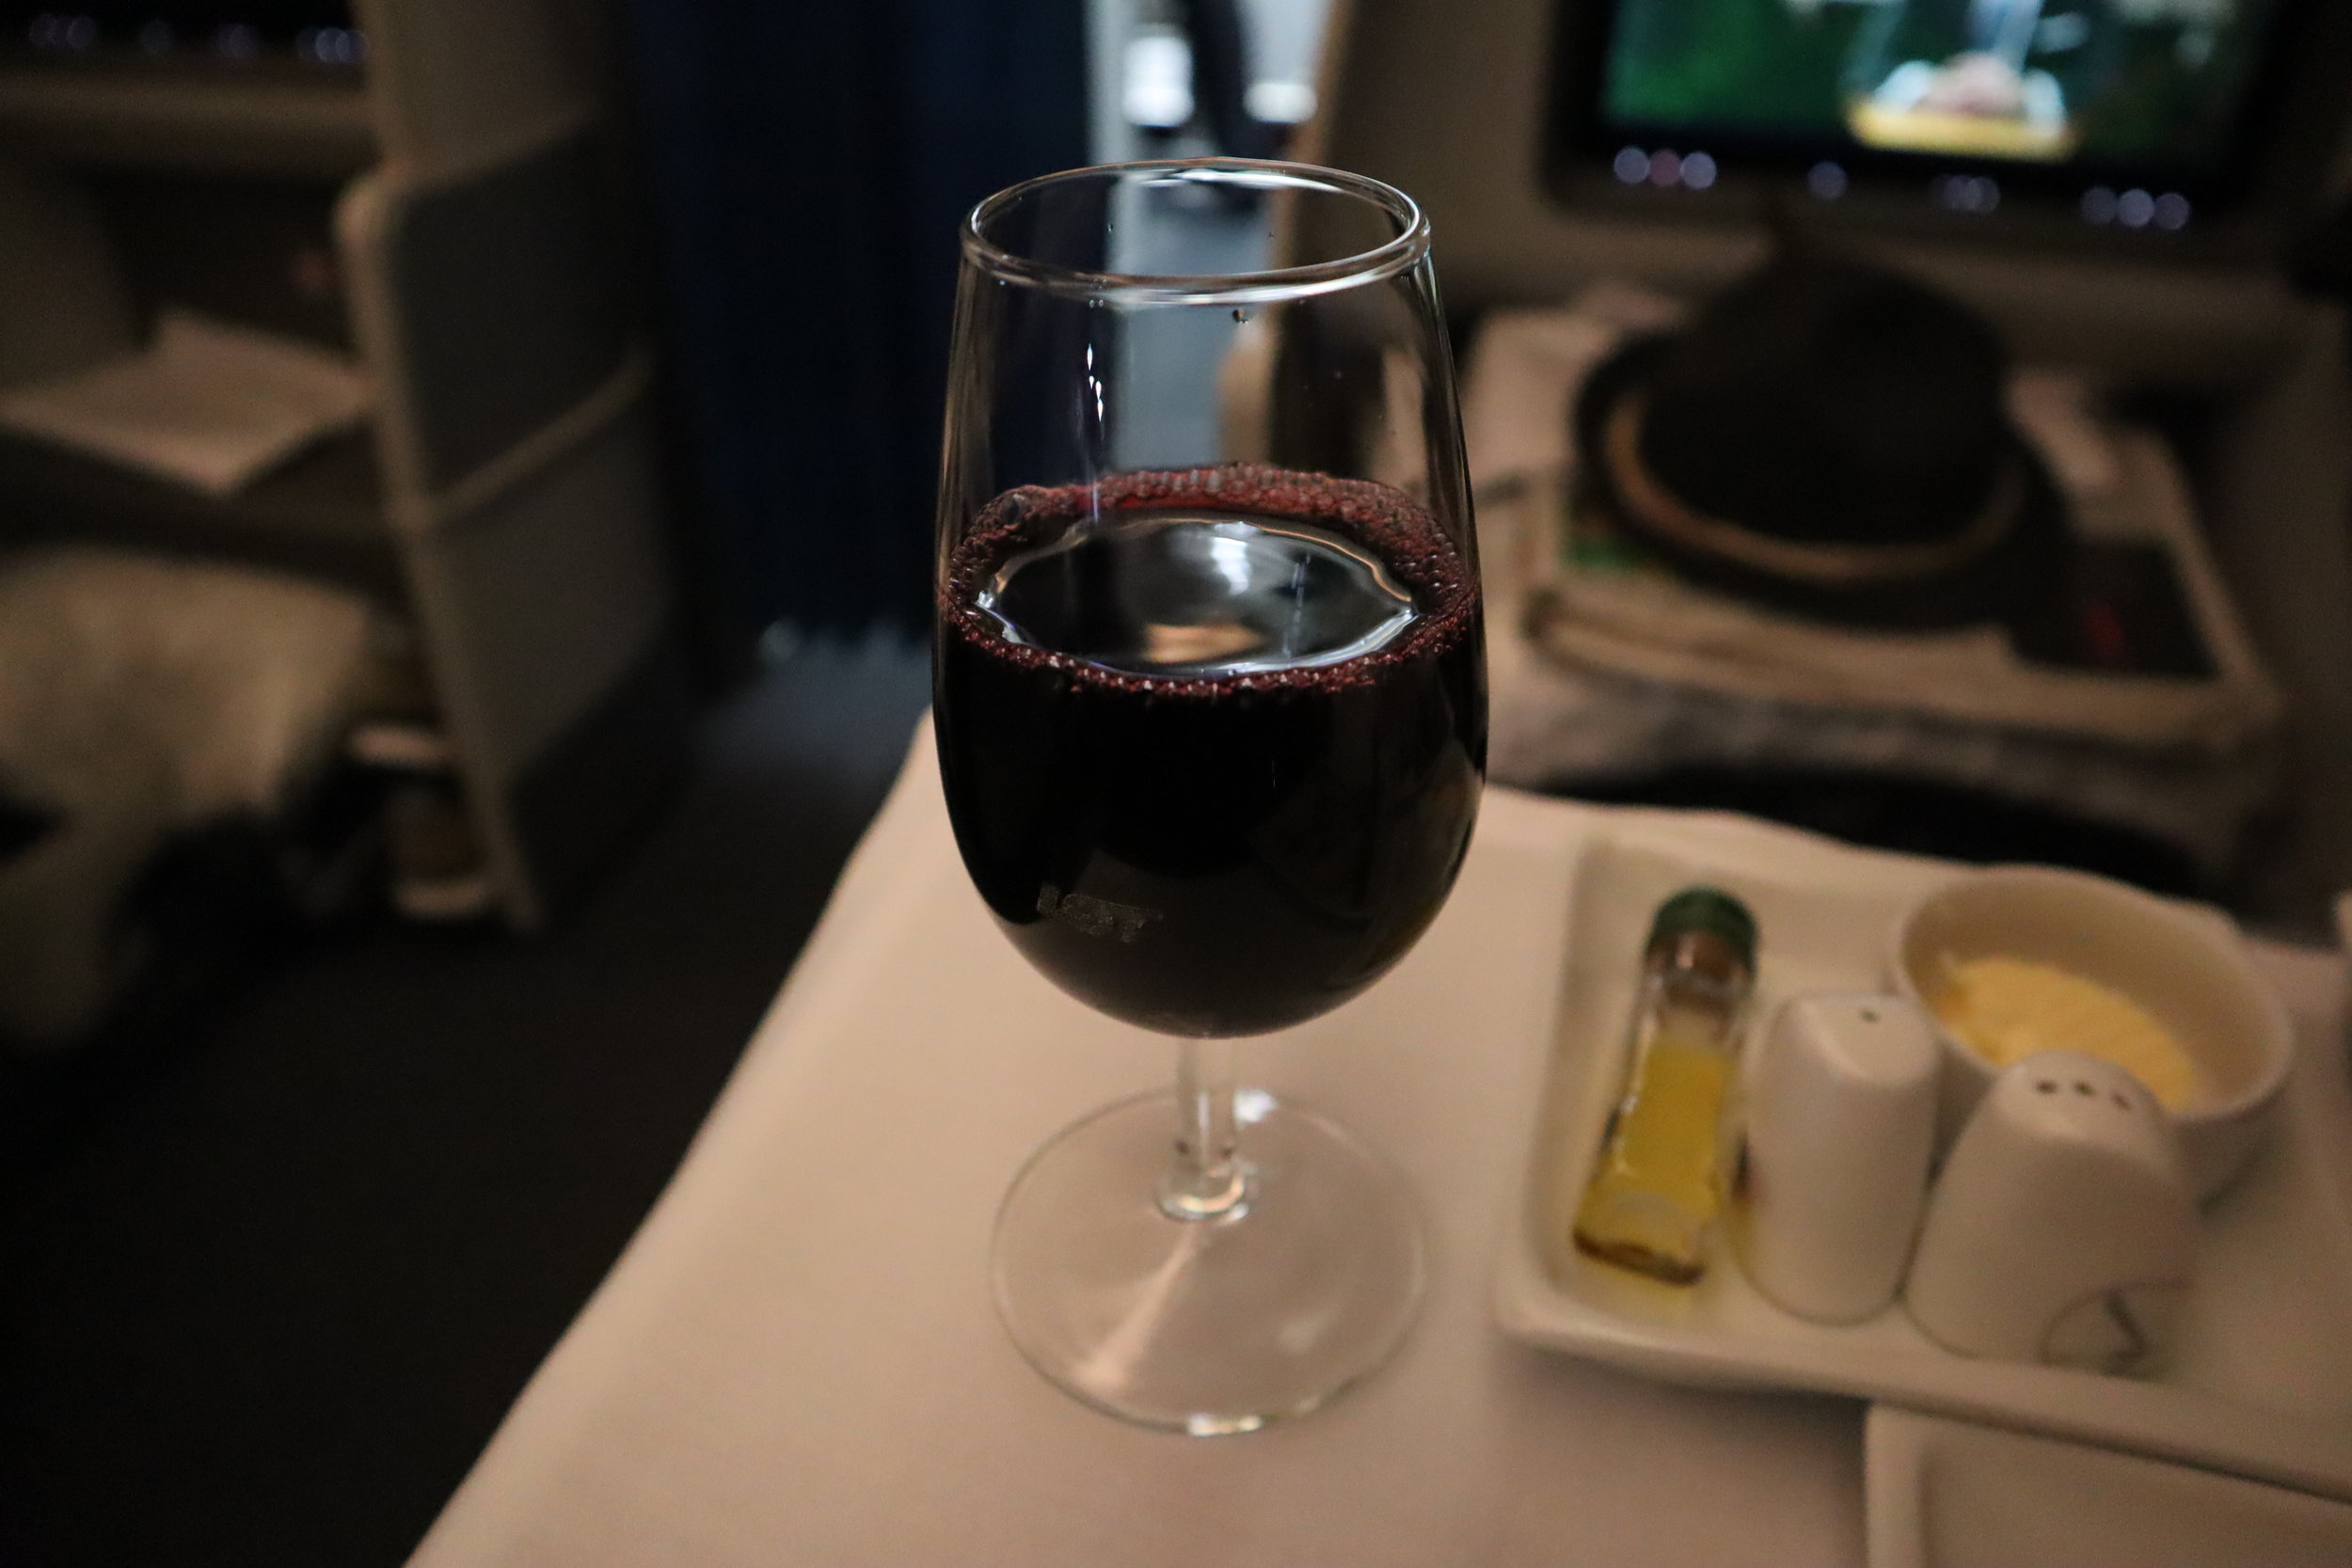 LOT Polish Airlines business class – Red wine